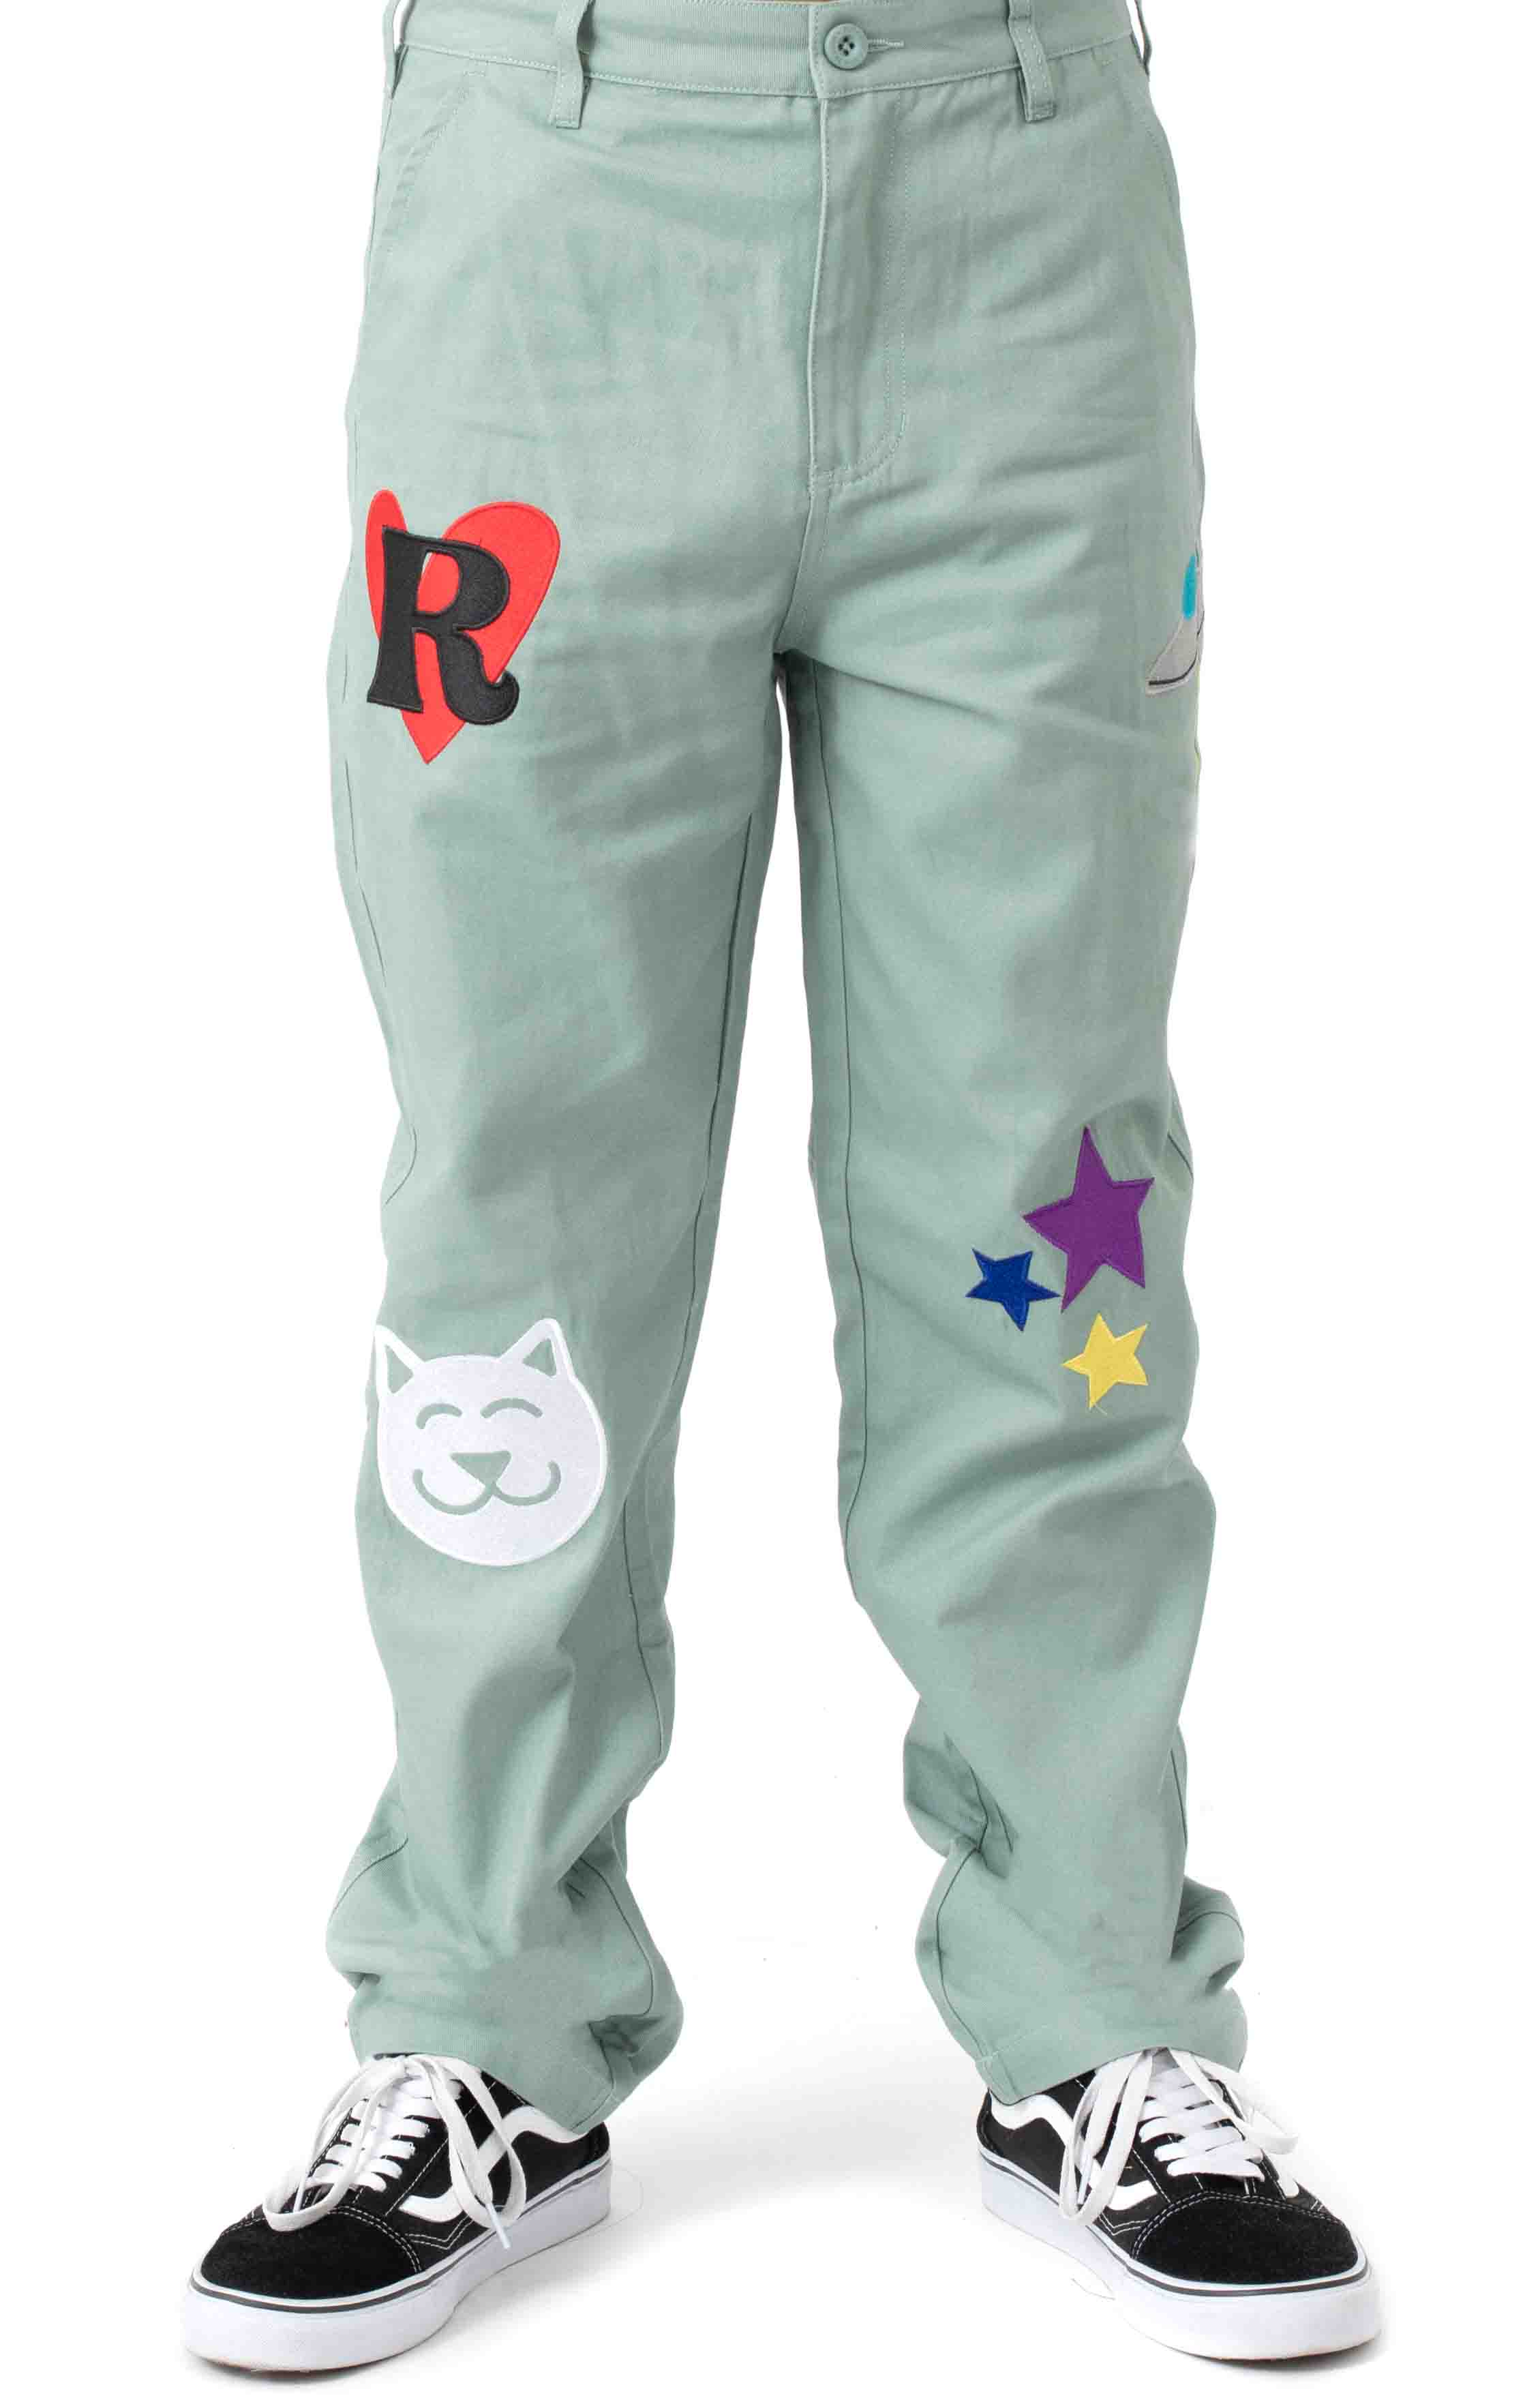 Play Date Cotton Twill Embroidered Pants - Pistacho